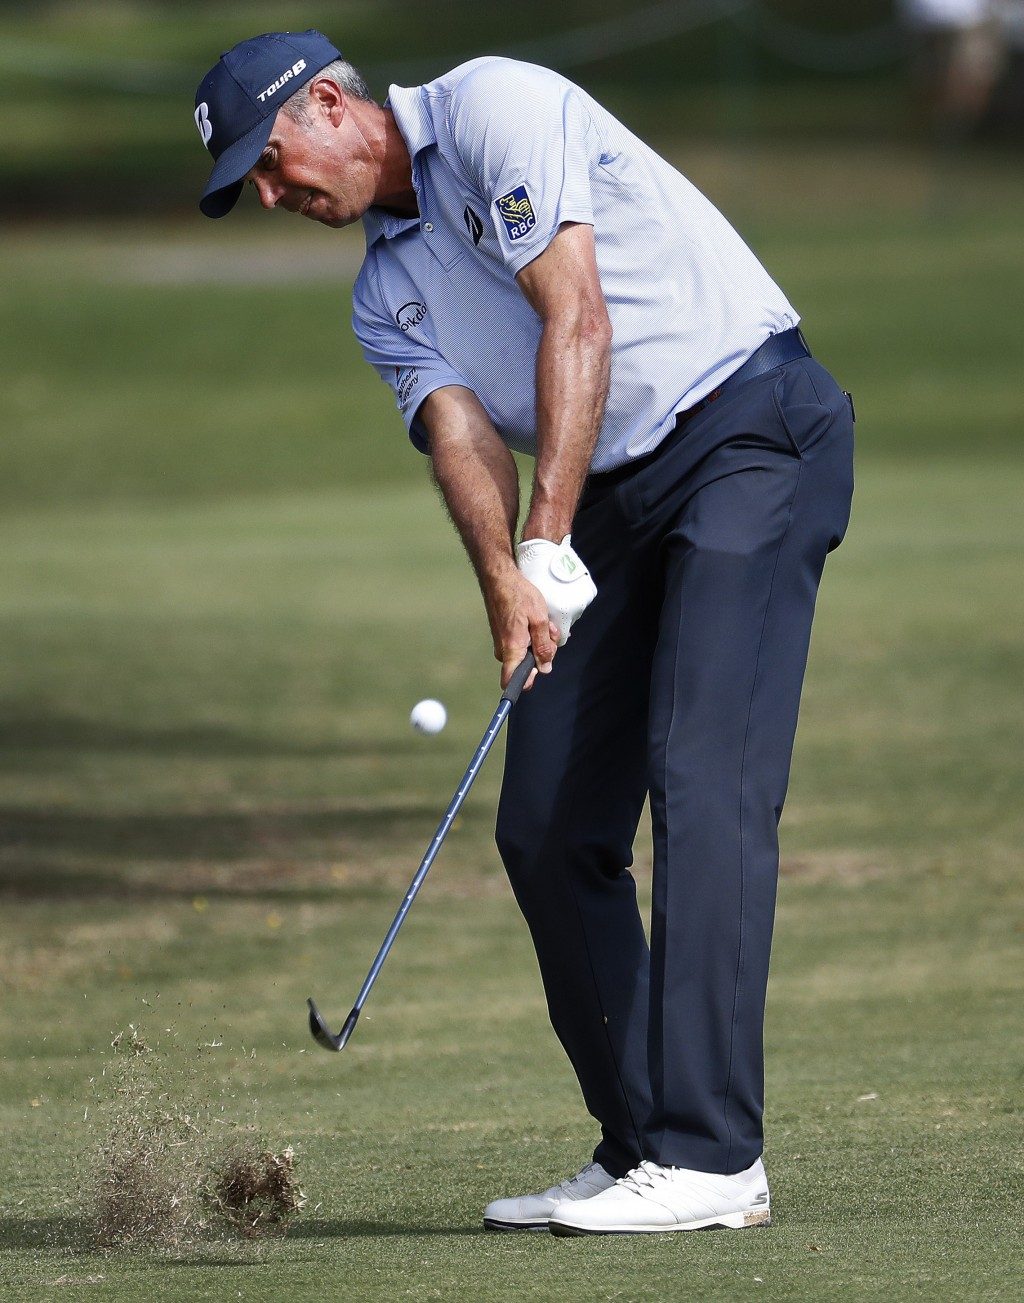 Matt Kuchar hits from the third fairway during the third round of the Sony Open PGA Tour golf event, Saturday, Jan. 12, 2019, at Waialae Country Club ...